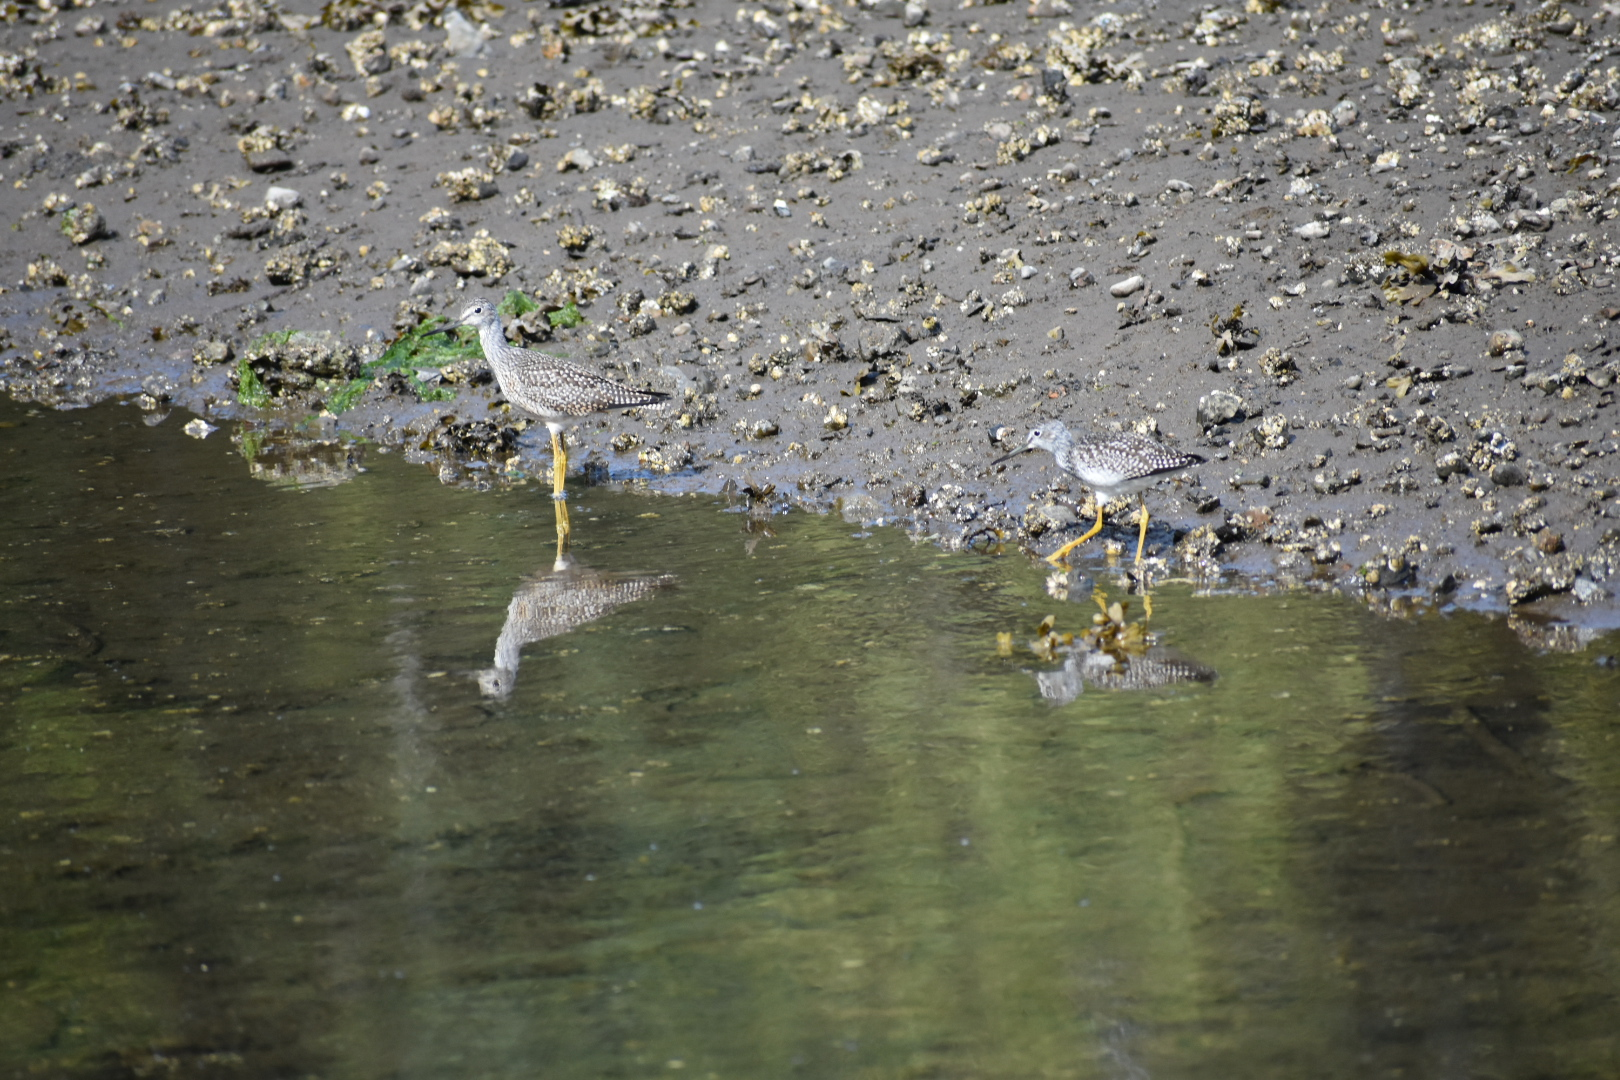 Yellowlegs at home in the mud.